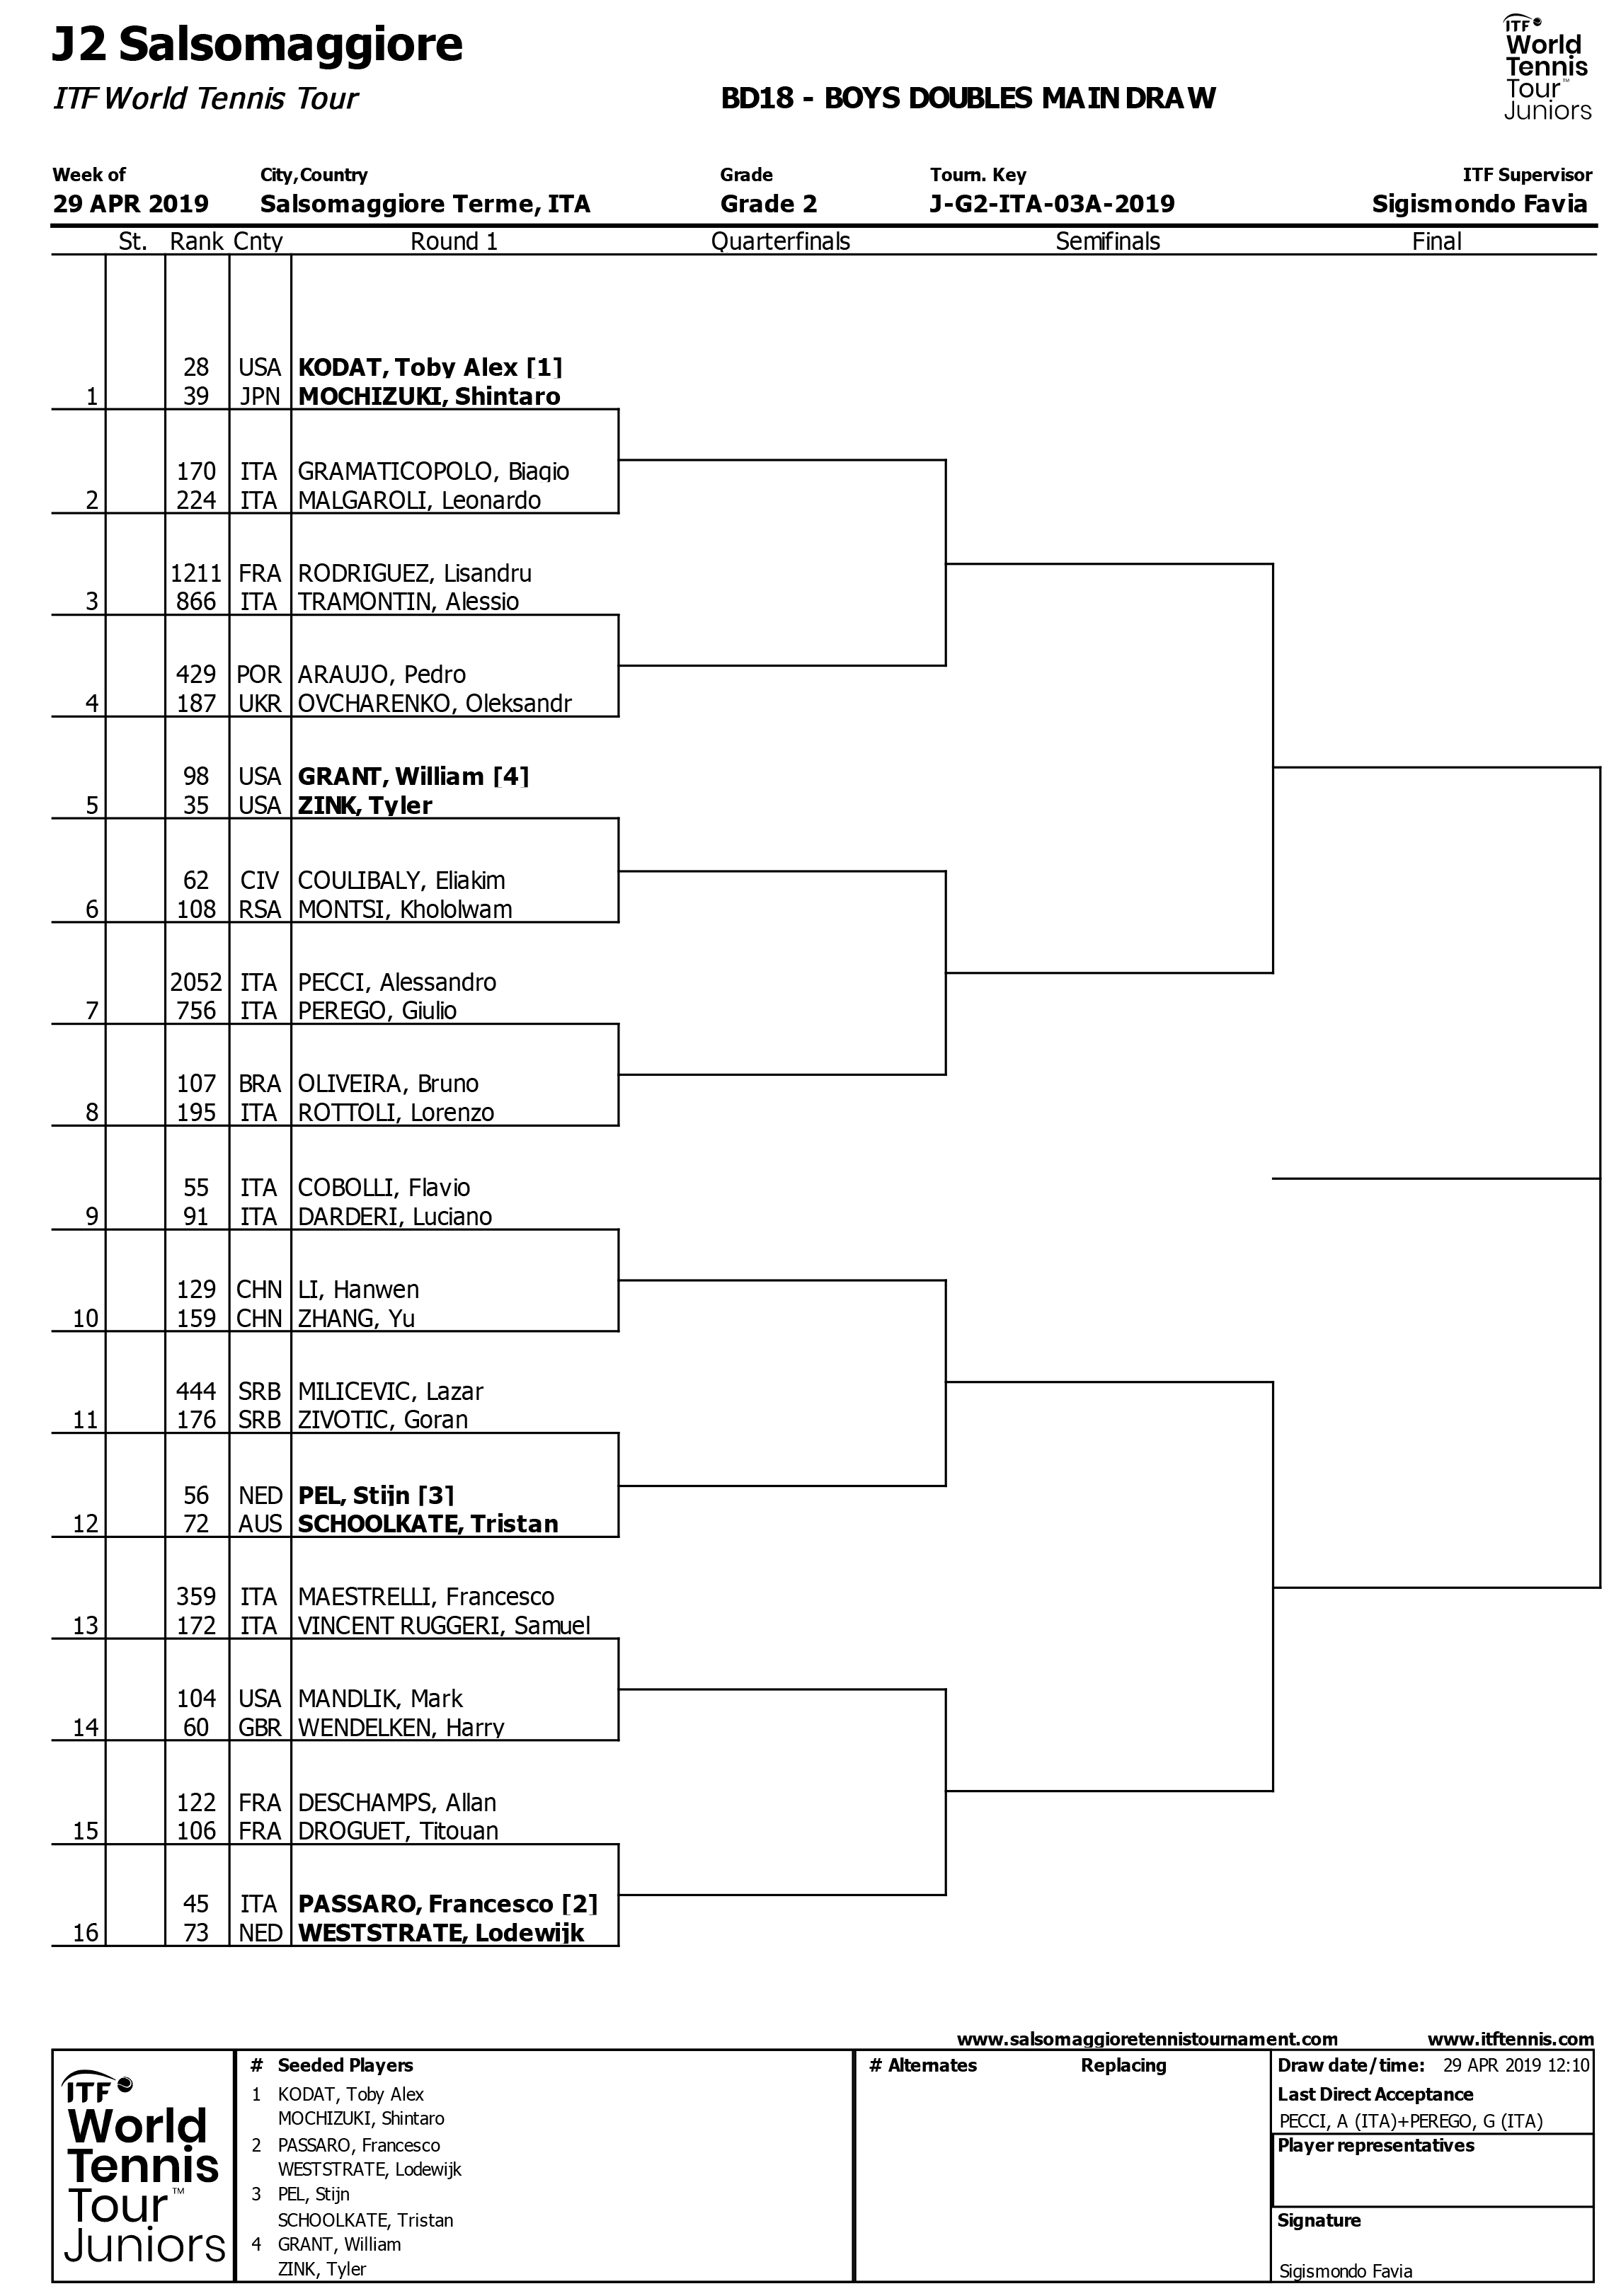 BOYS DOUBLES MAIN DRAW